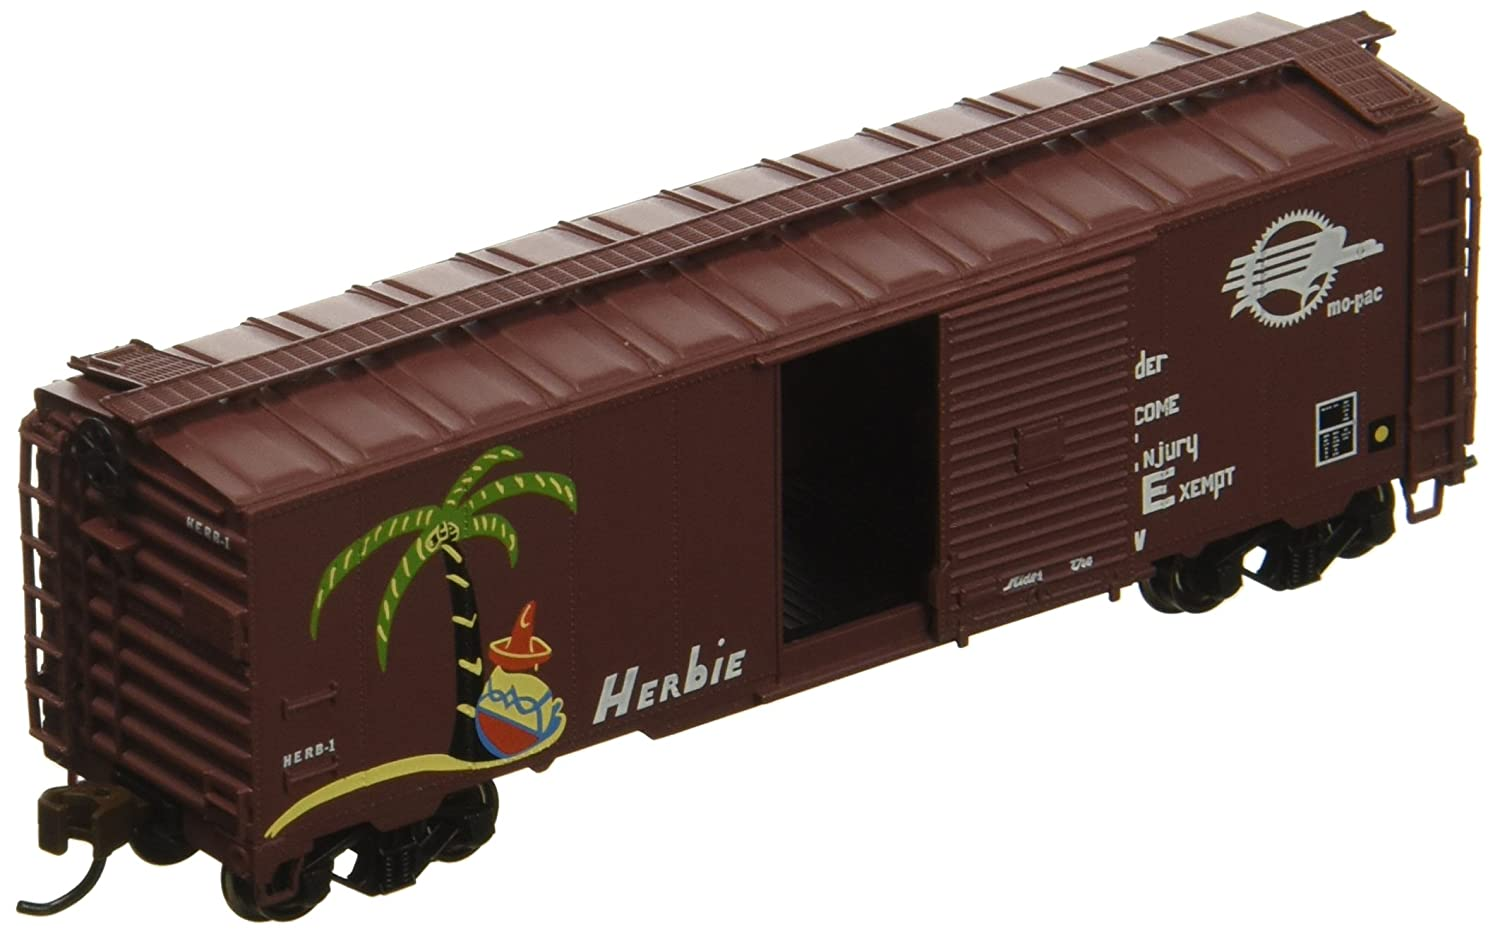 Bachmann Industries Missouri Pacific Herbie AAR Steel Box Car (N Scale), 40' 40' Bachmann Industries Inc. 17060